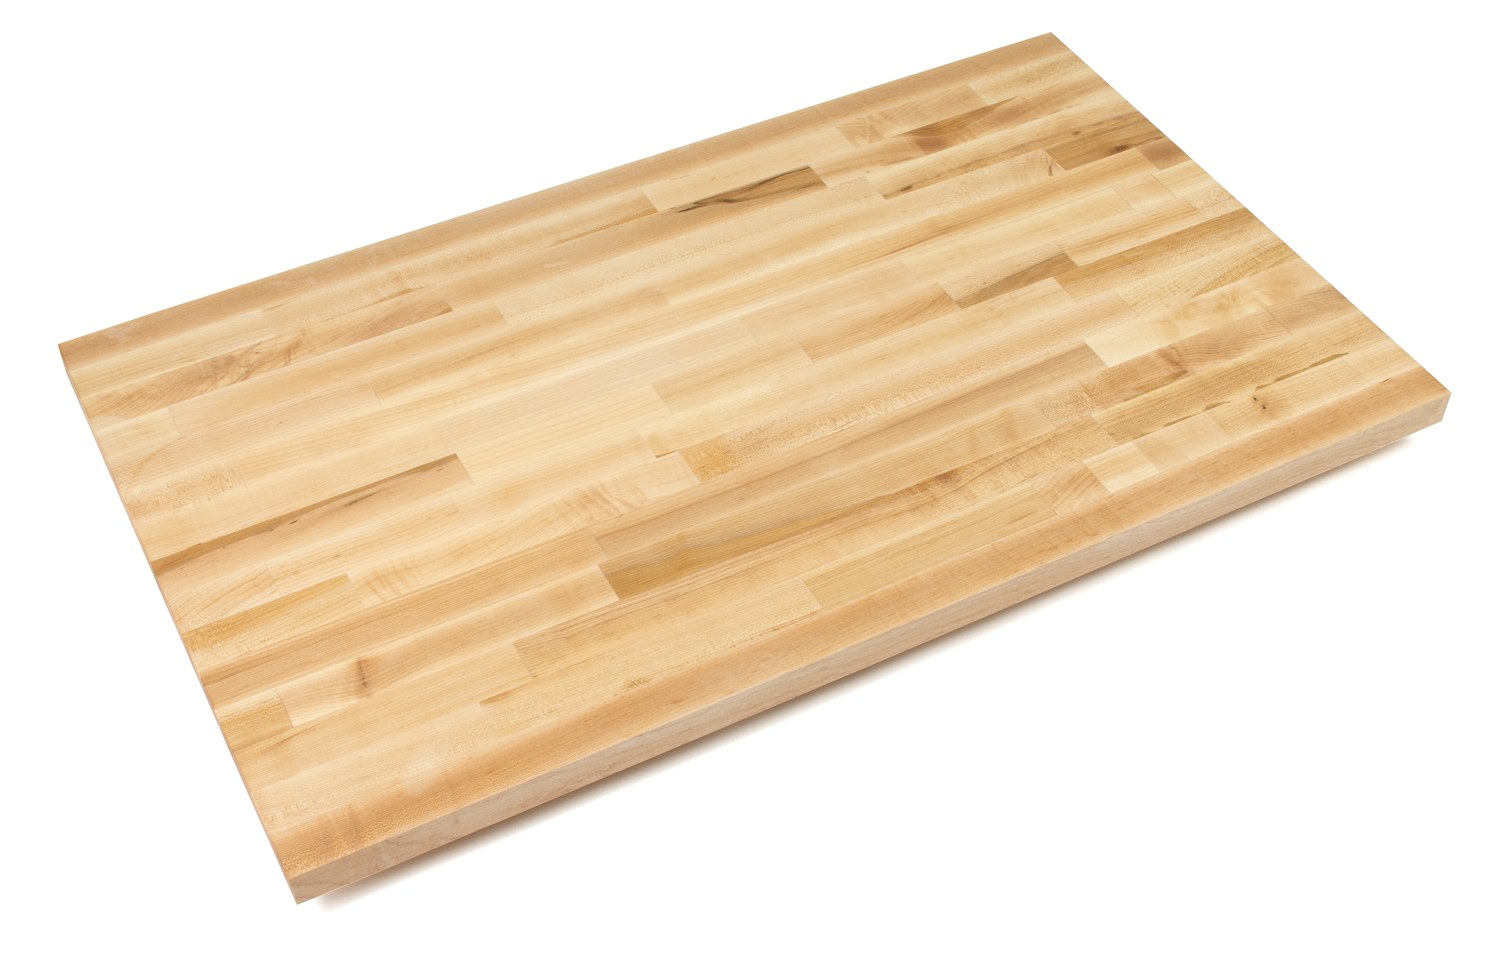 Boos Blended Maple Butcher Block Counter / Island Top Sample, 3